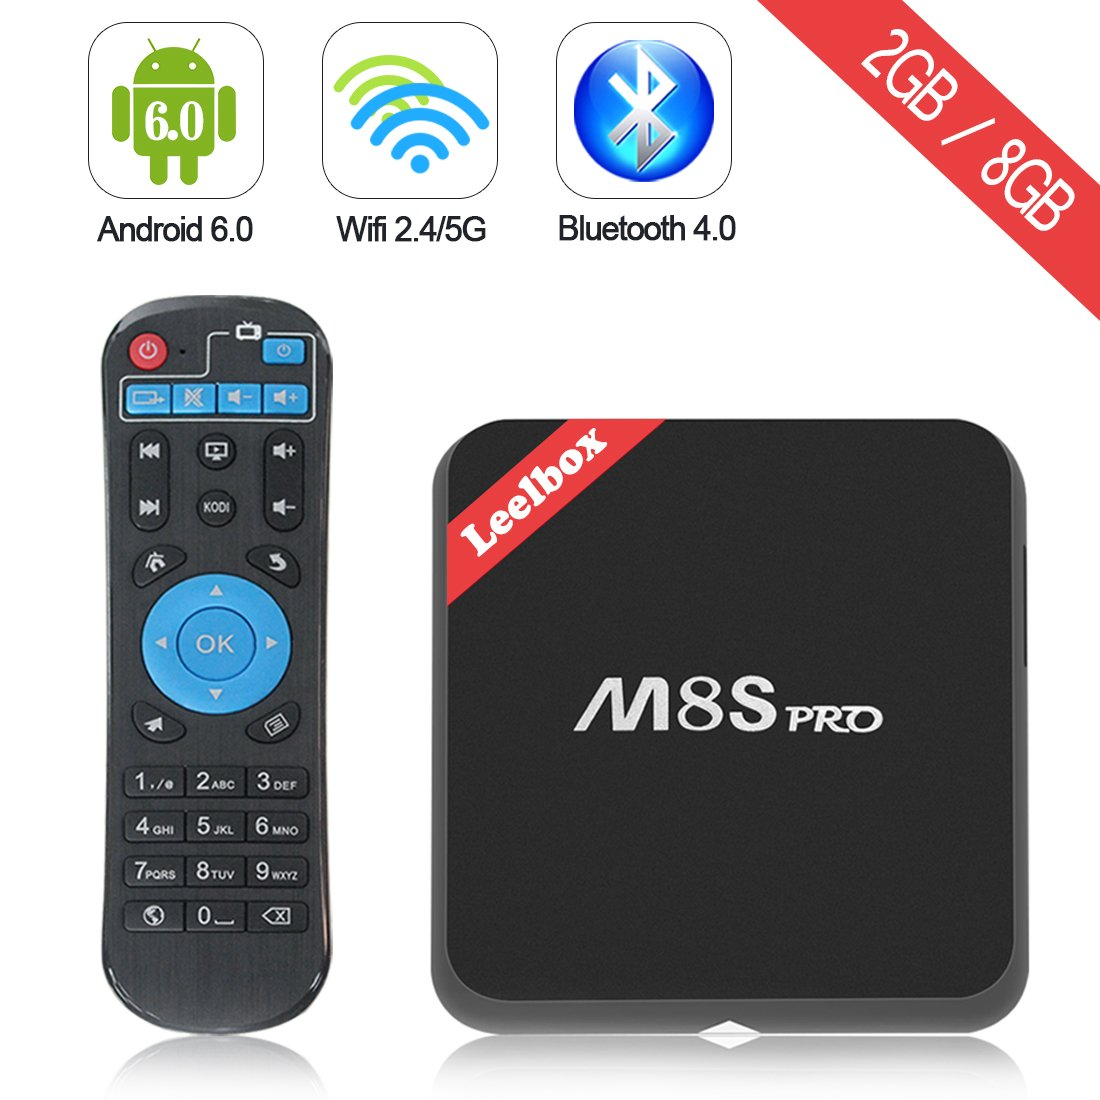 M8S Pro 2017 Android TV Box